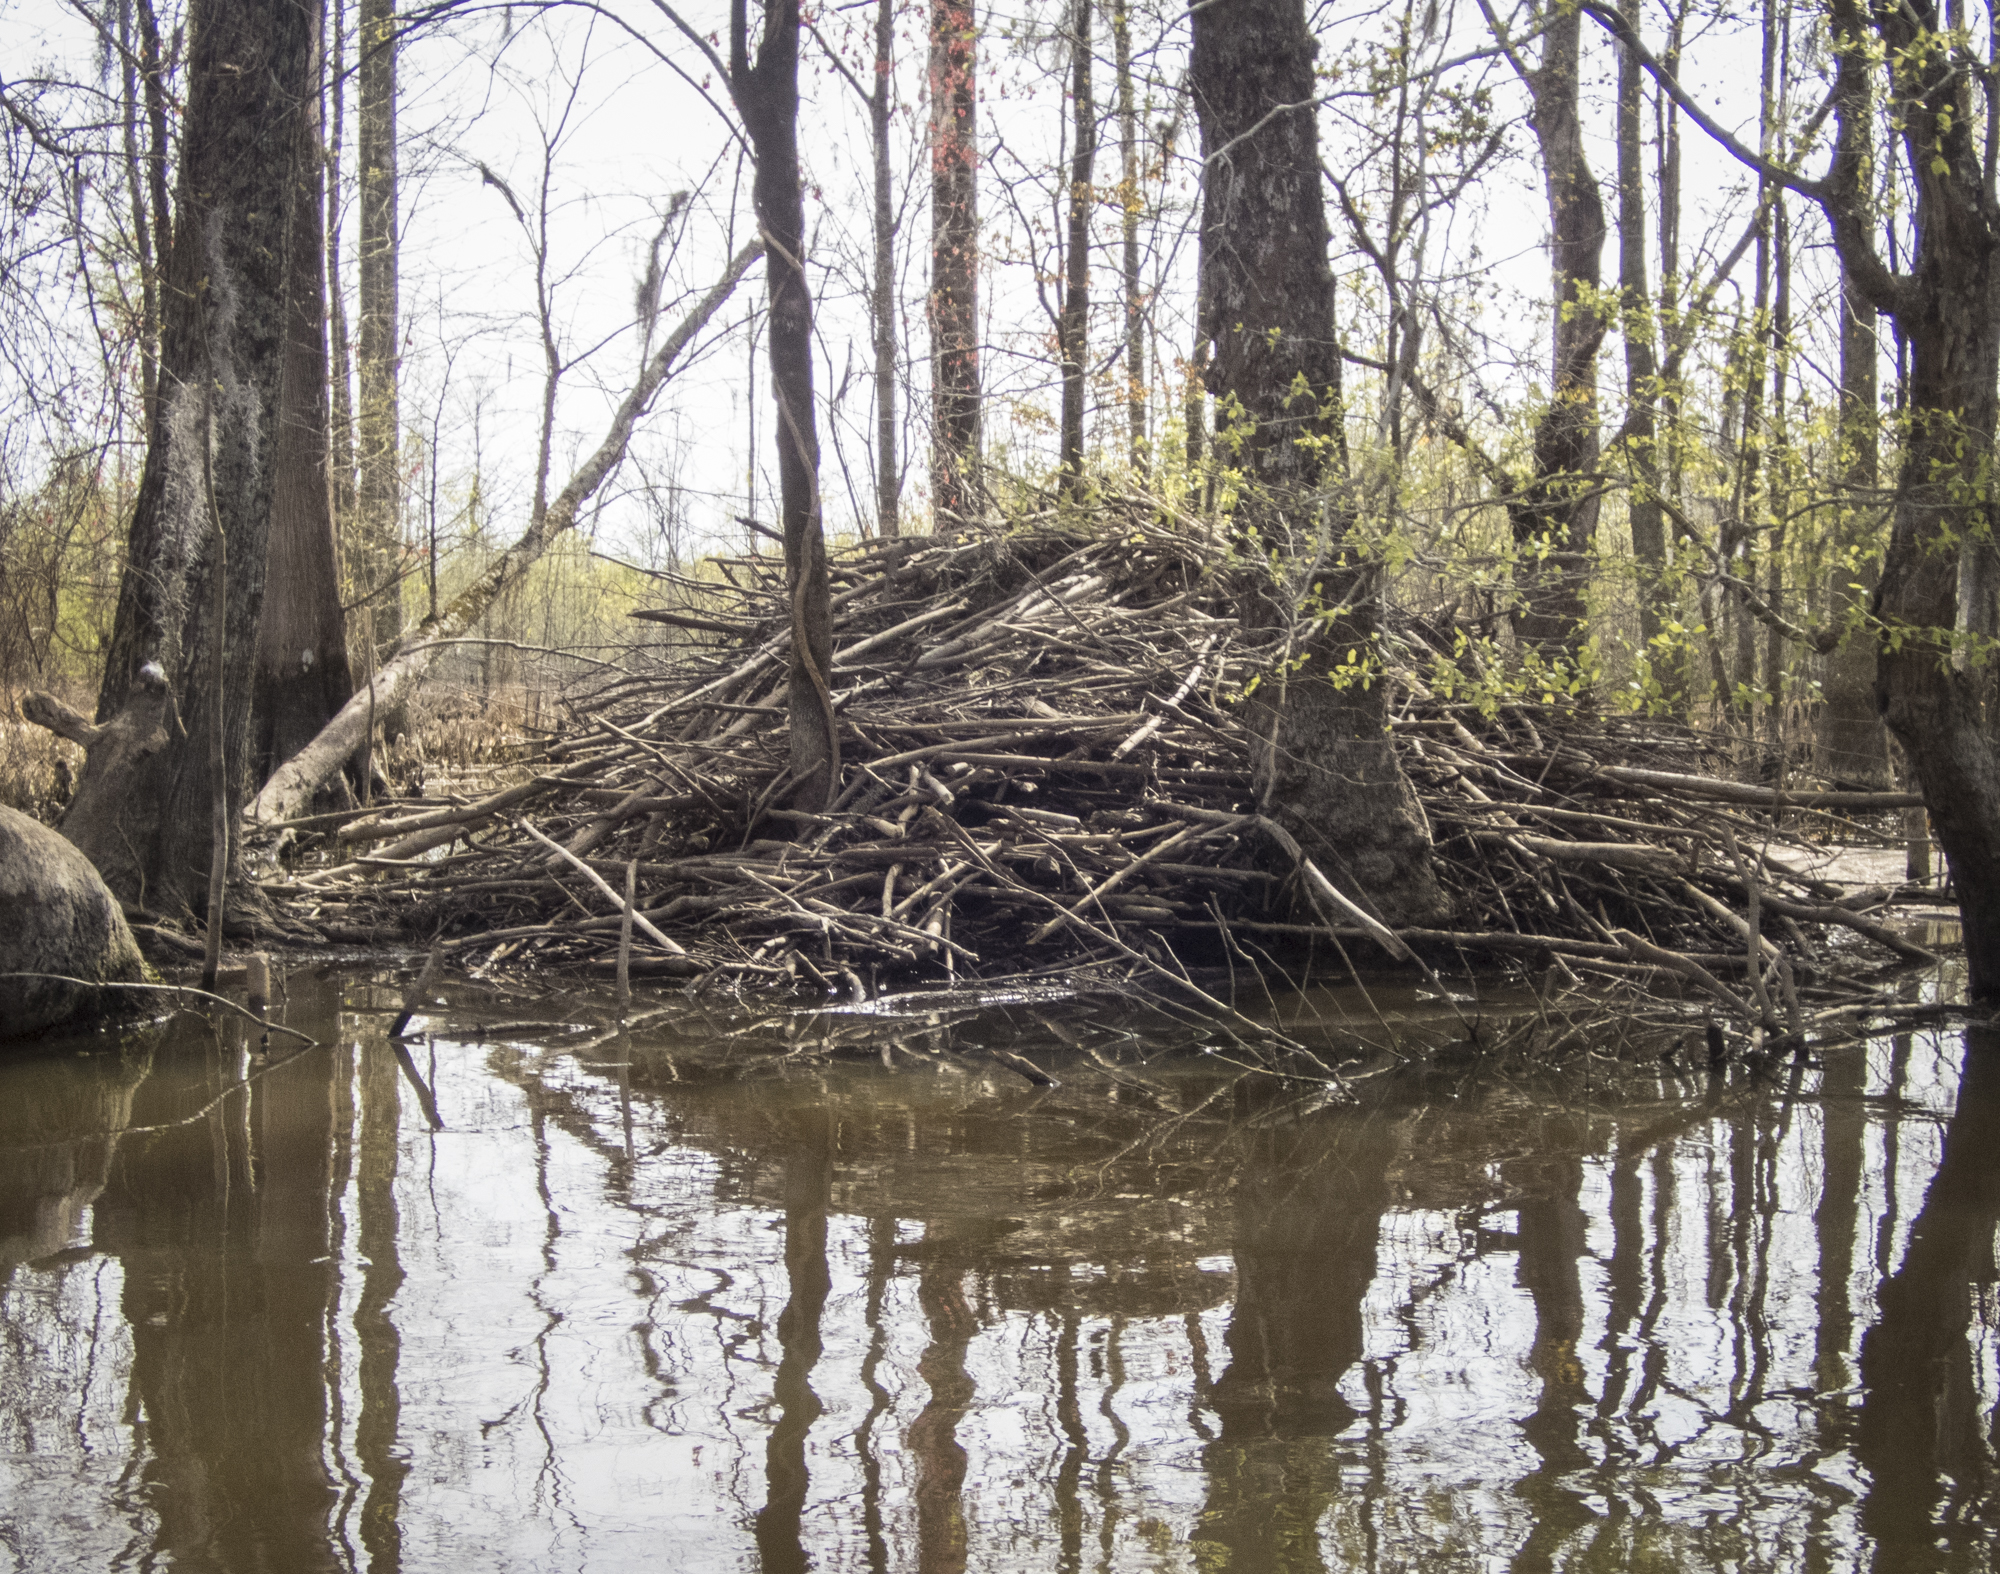 beaver lodge along Devil's Gut